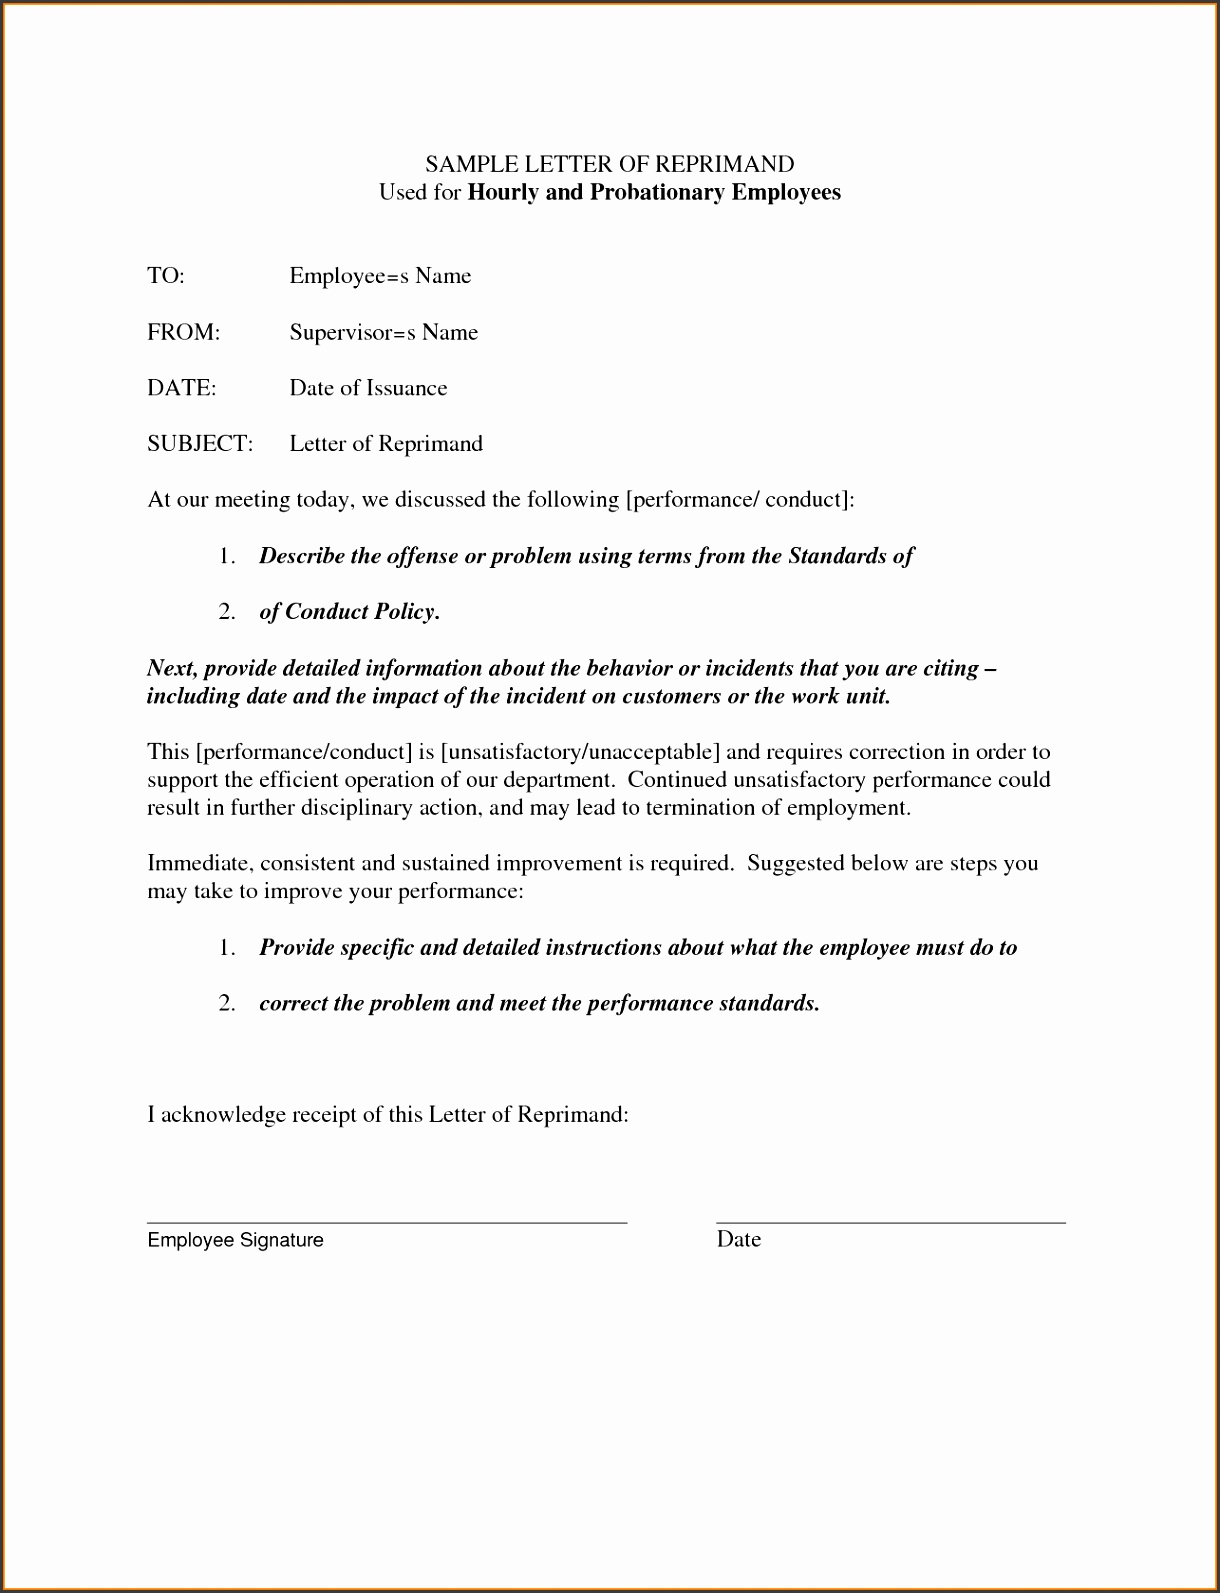 SAMPLE LETTER OF REPRIMAND Used for Hourly and Probationary by